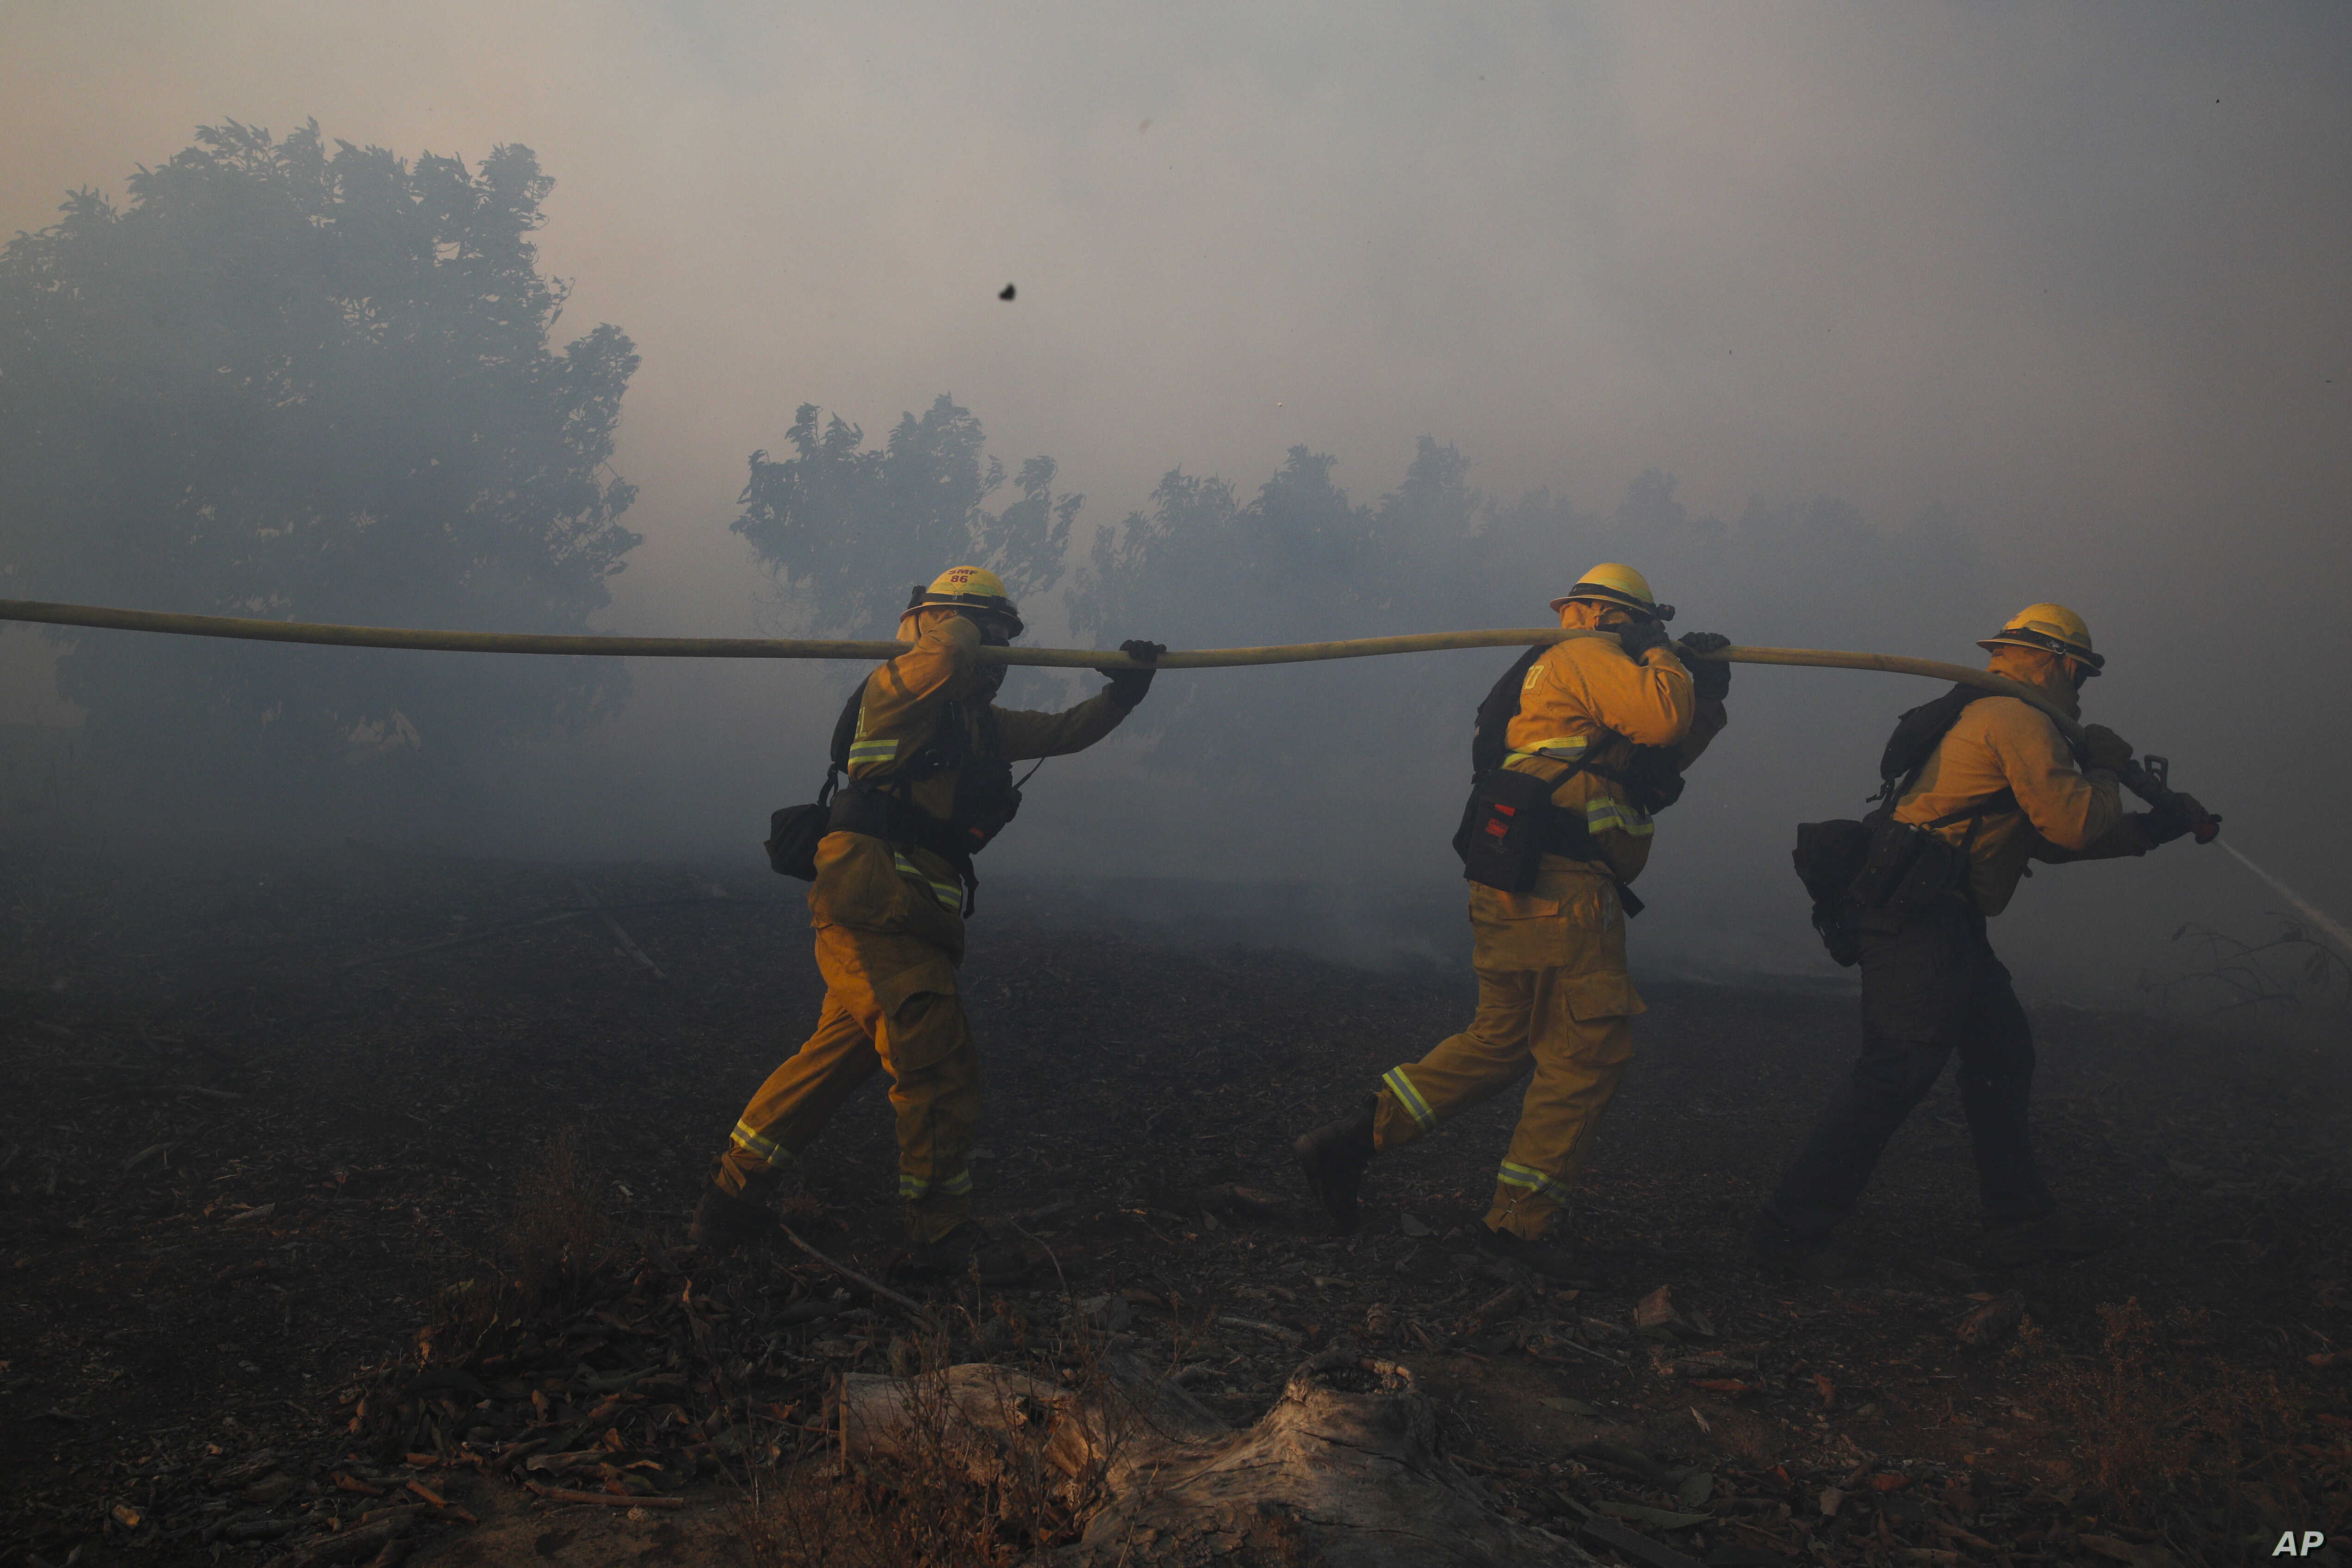 Firefighters put out a wildfire burning in an orchard, Dec. 5, 2017, in Santa Paula, Calif. The city is about 50 miles northwest of Los Angeles.